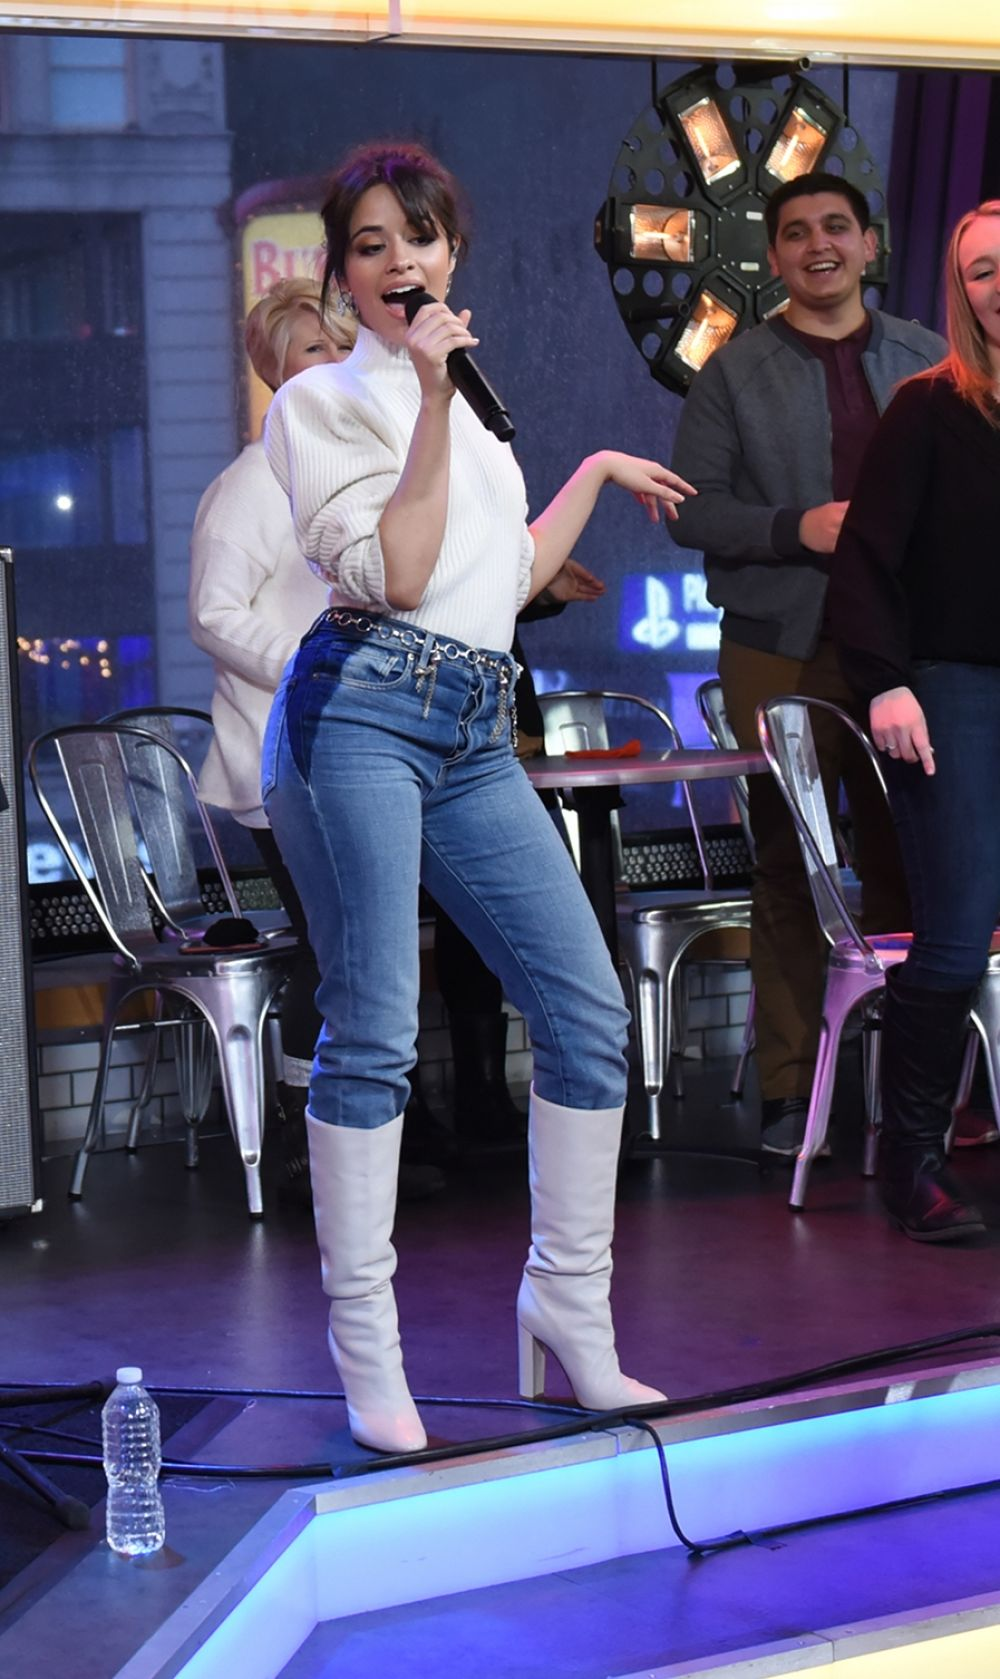 Good Morning America Nyc : Camila cabello performing on good morning america in nyc